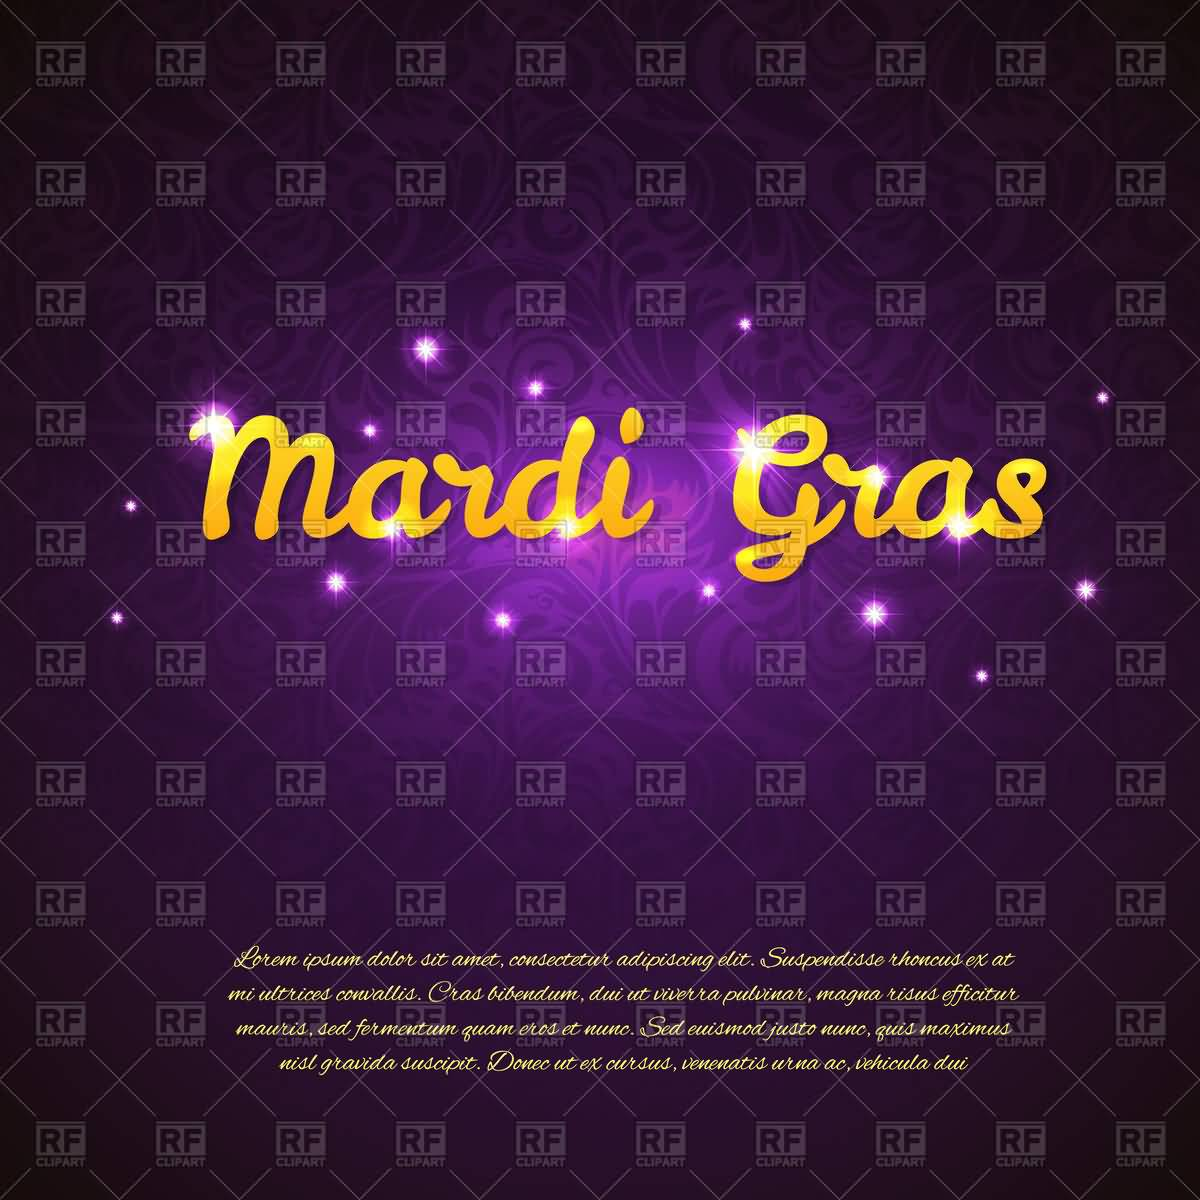 54-Mardi Gras Wishes